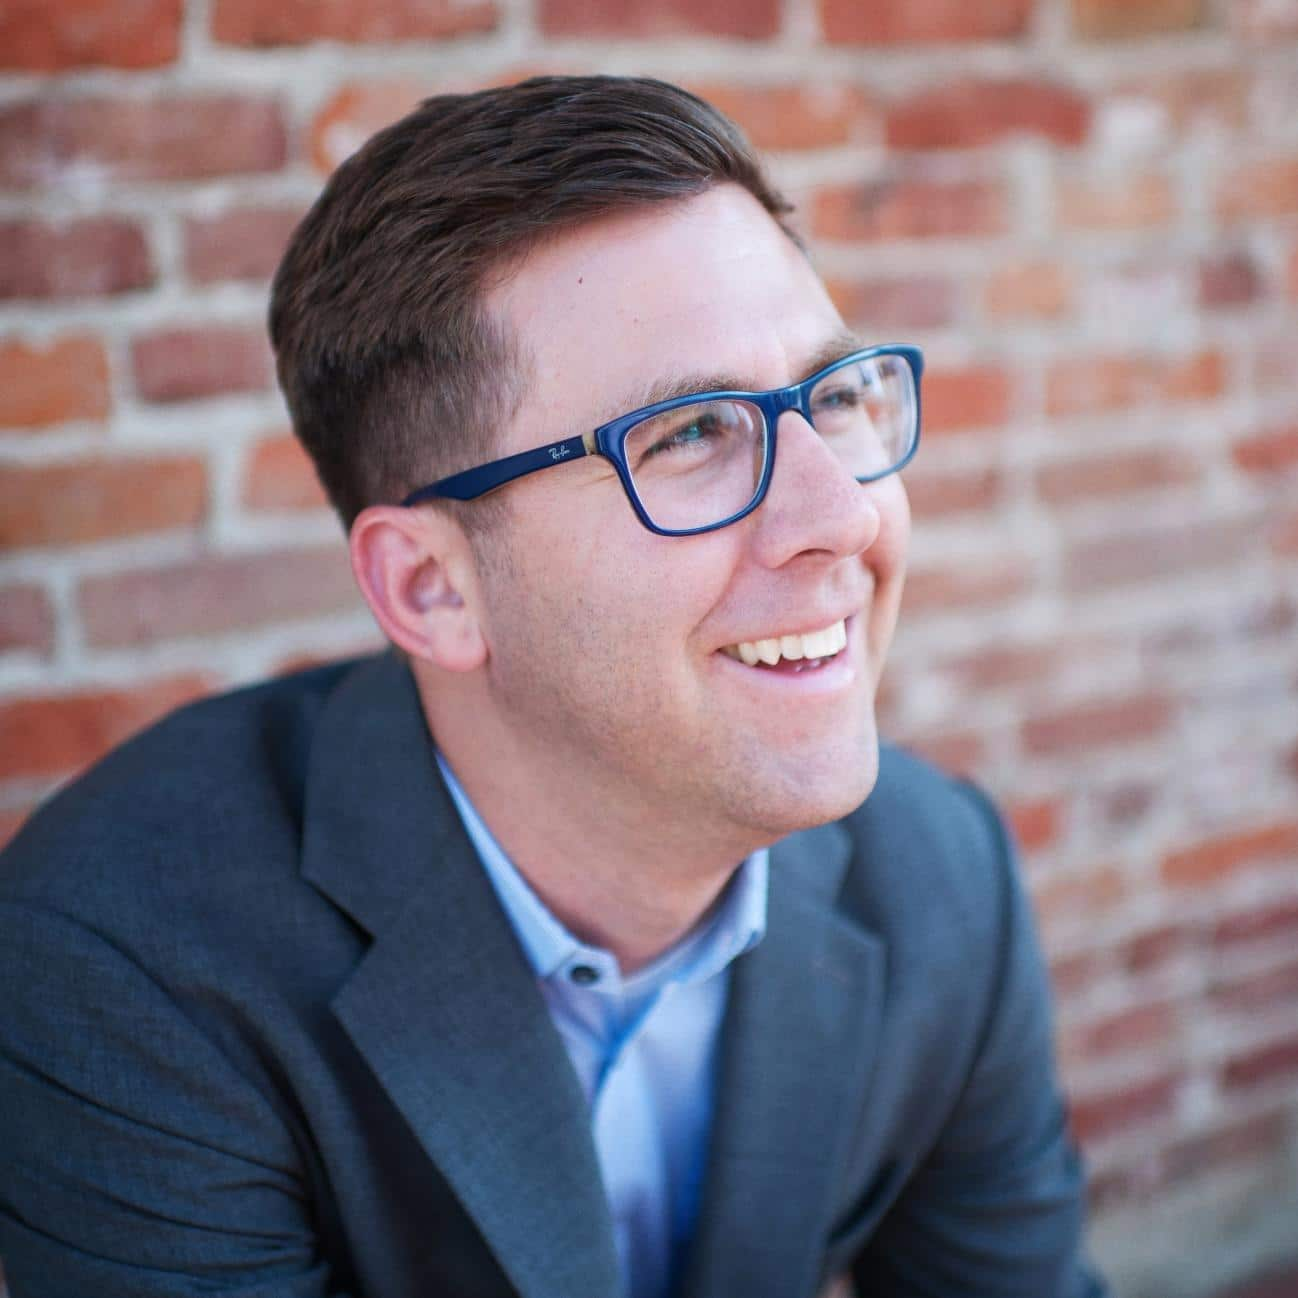 CNLP 082: David Kinnaman on How Christians are Increasingly Perceived by the Unchurched as Irrelevant and Extreme